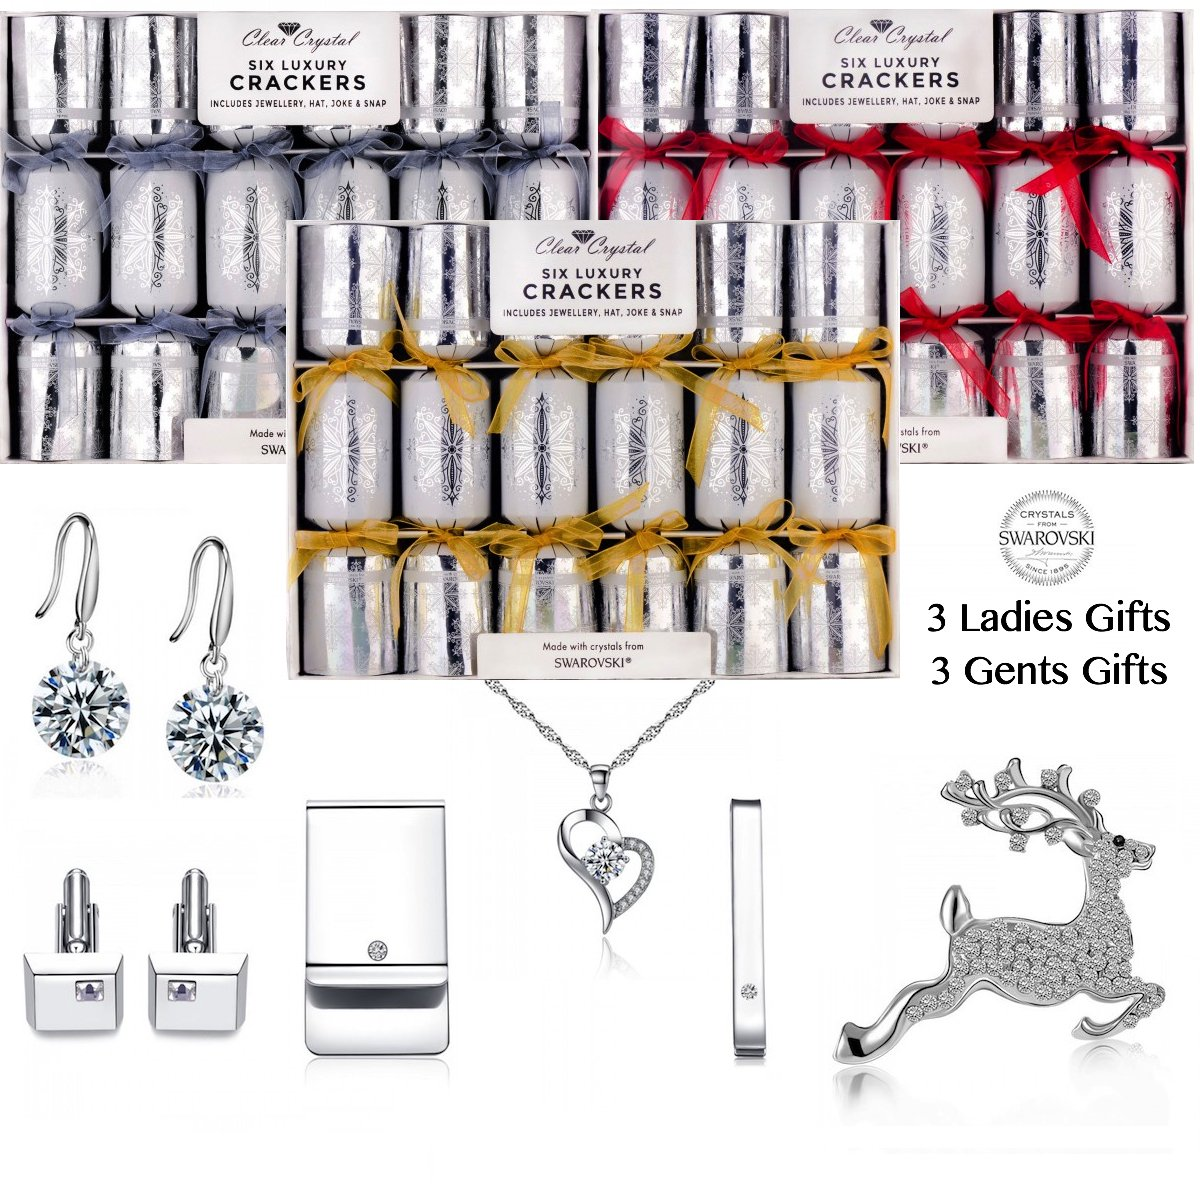 6 LUXURY SWAROVSKI CHRISTMAS CRACKERS by CLEAR CRYSTAL